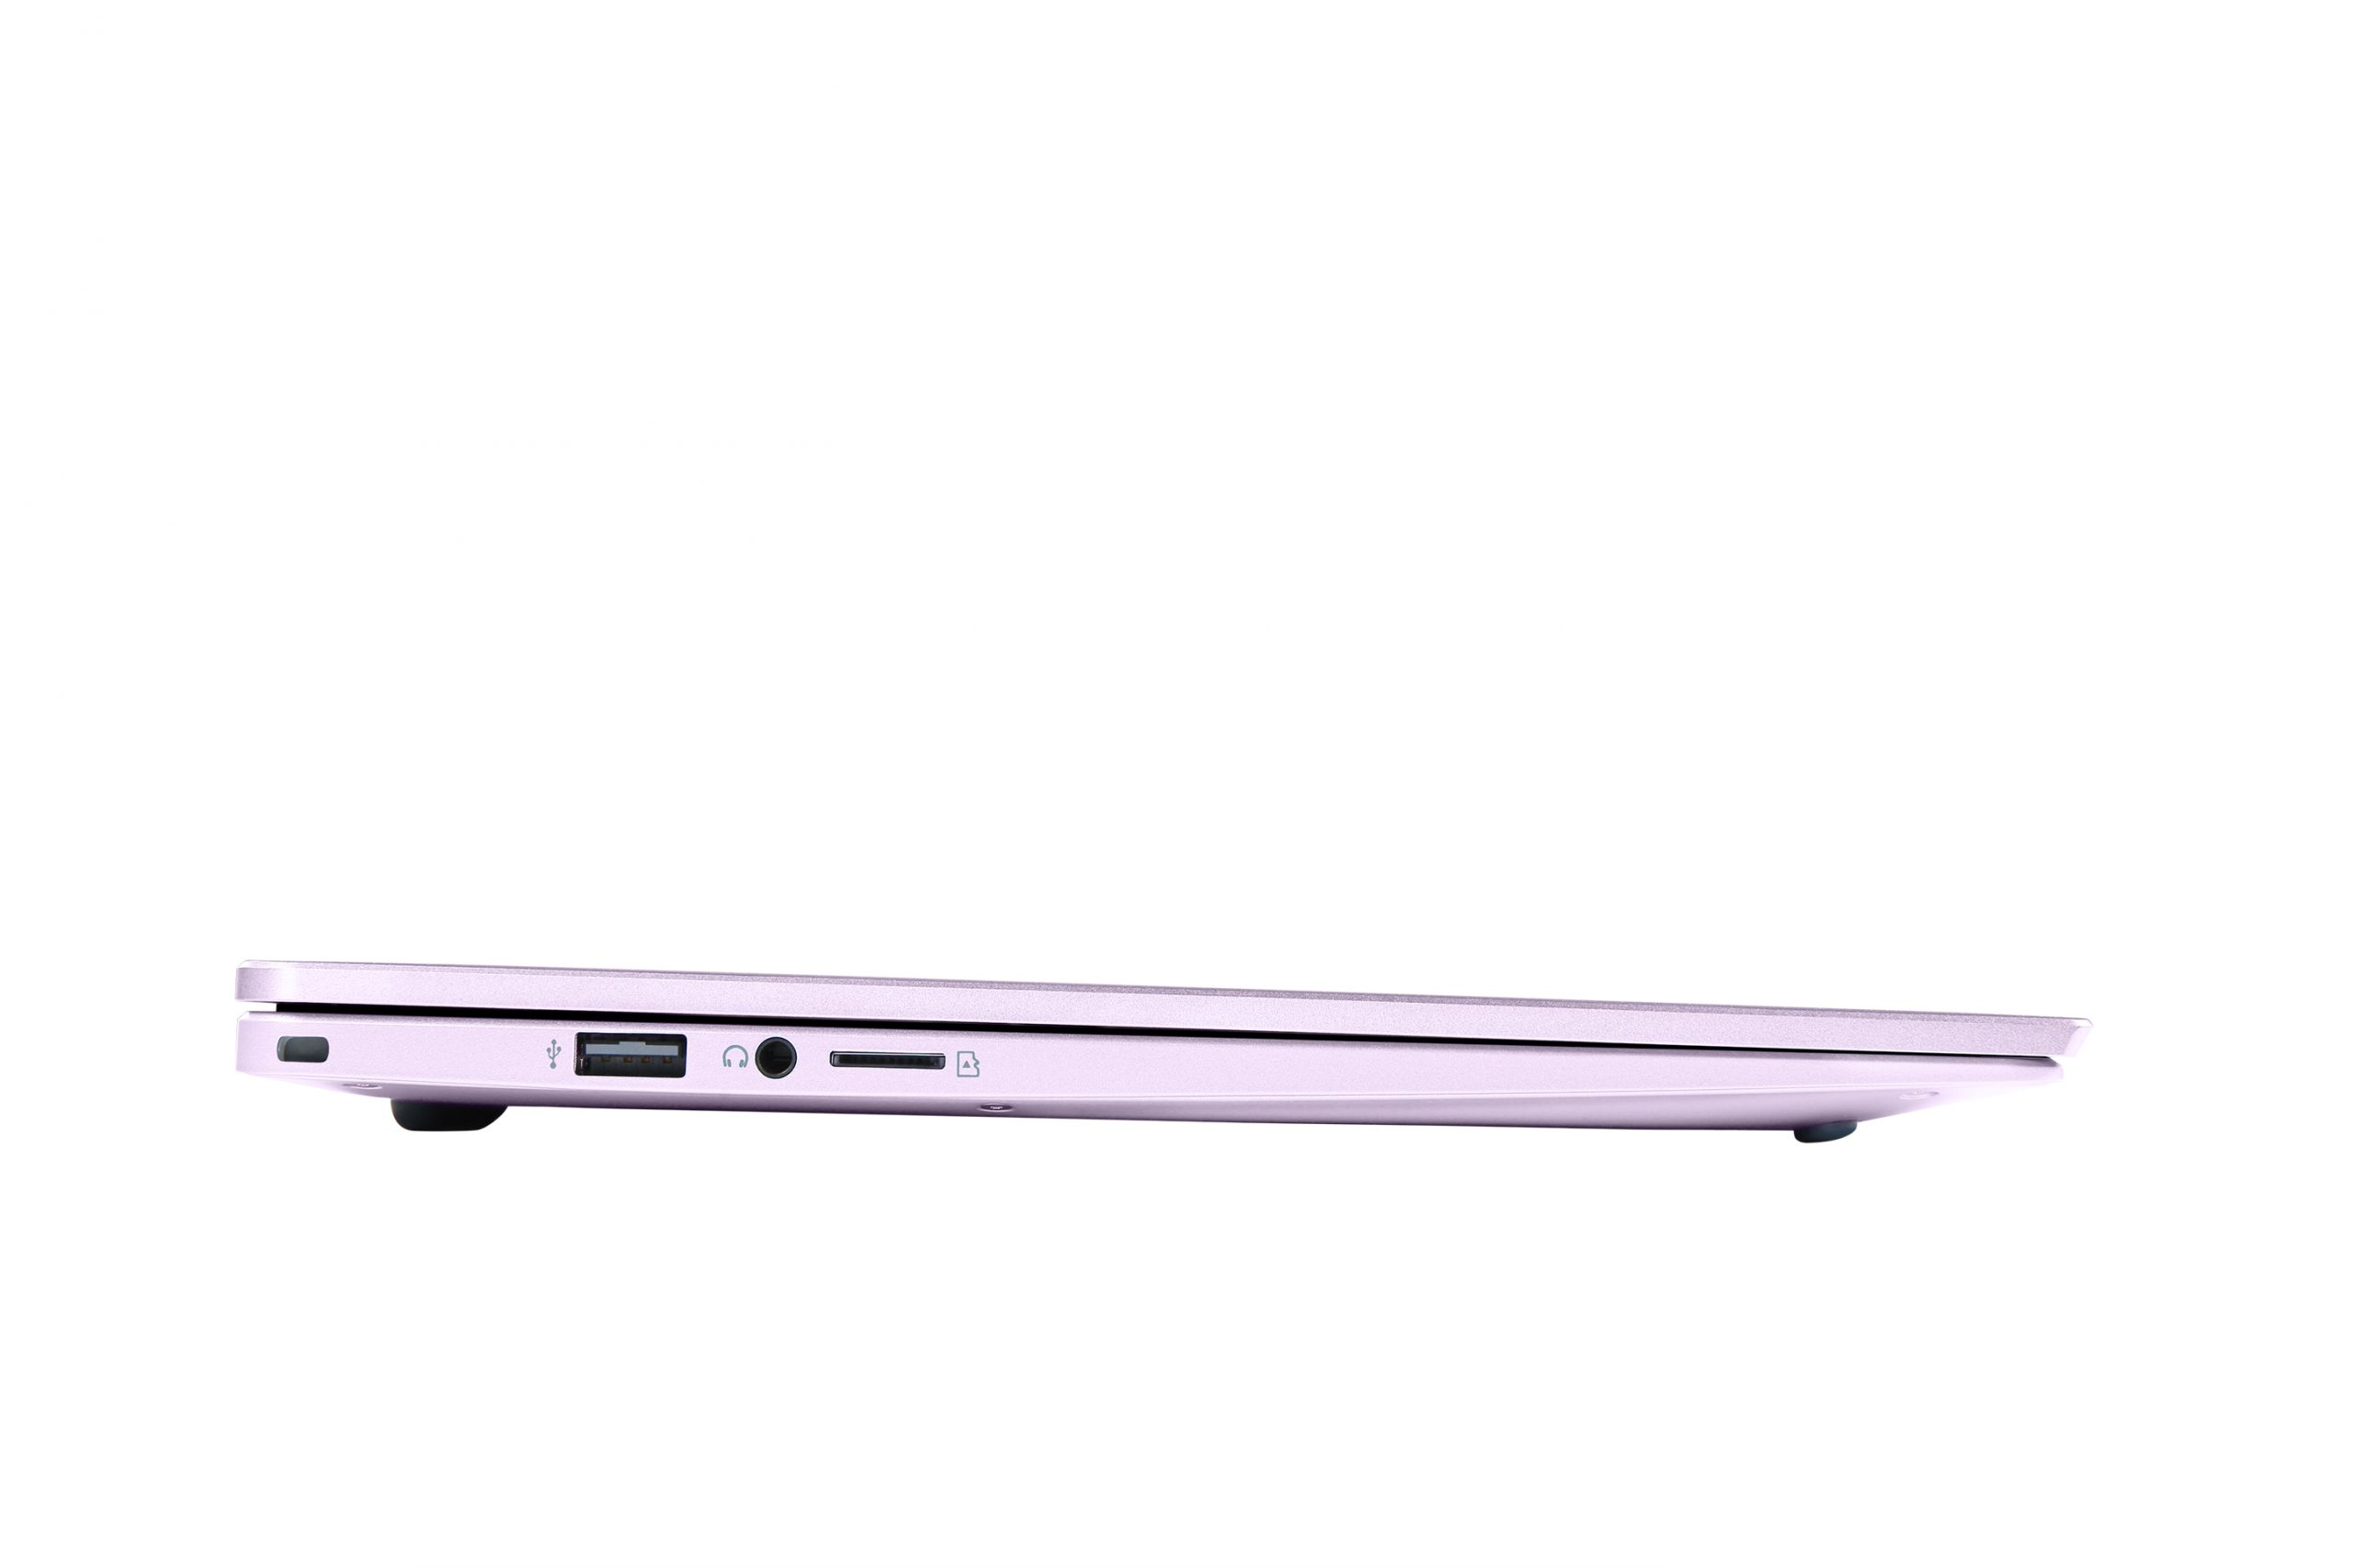 https://t2qwifi.com/wp-content/uploads/2020/07/avita_laptop_2020_angle3_0025_high_fragrant-lilac-scaled.jpg